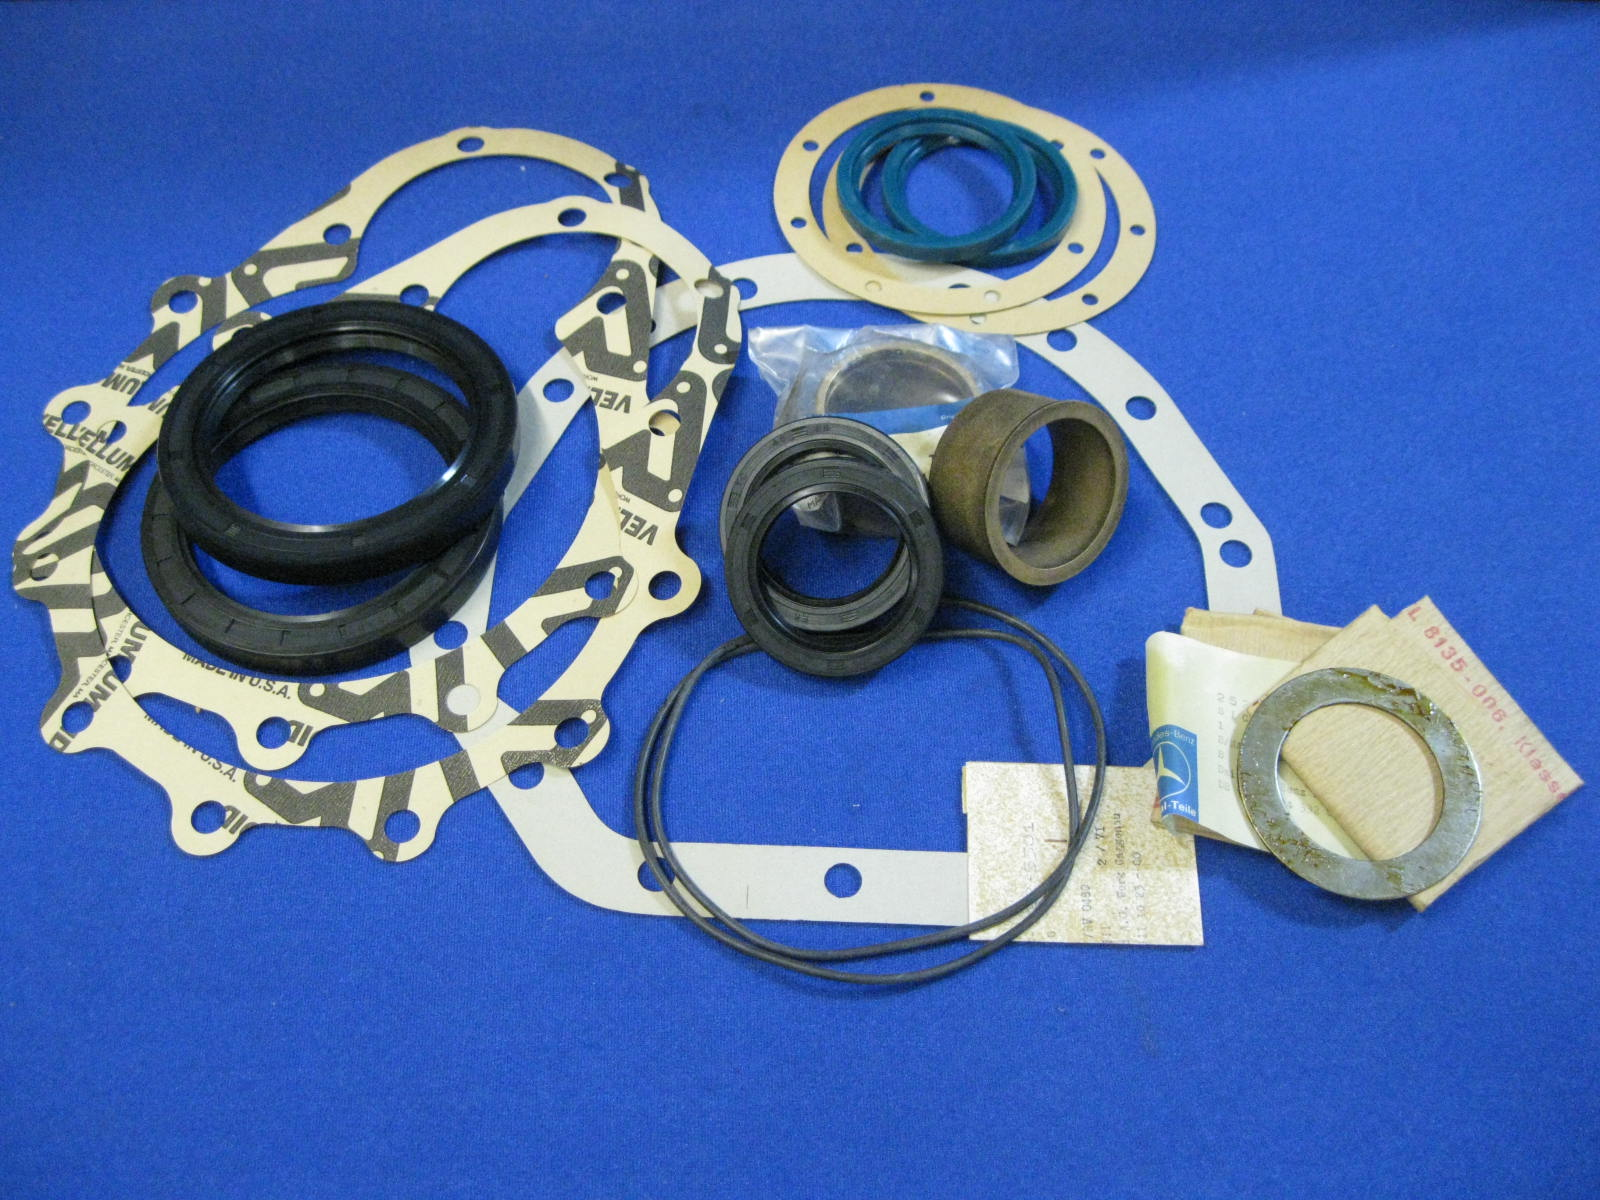 404 Front Axle Bushing, Gasket, Seal Kit - AFTERMARKET